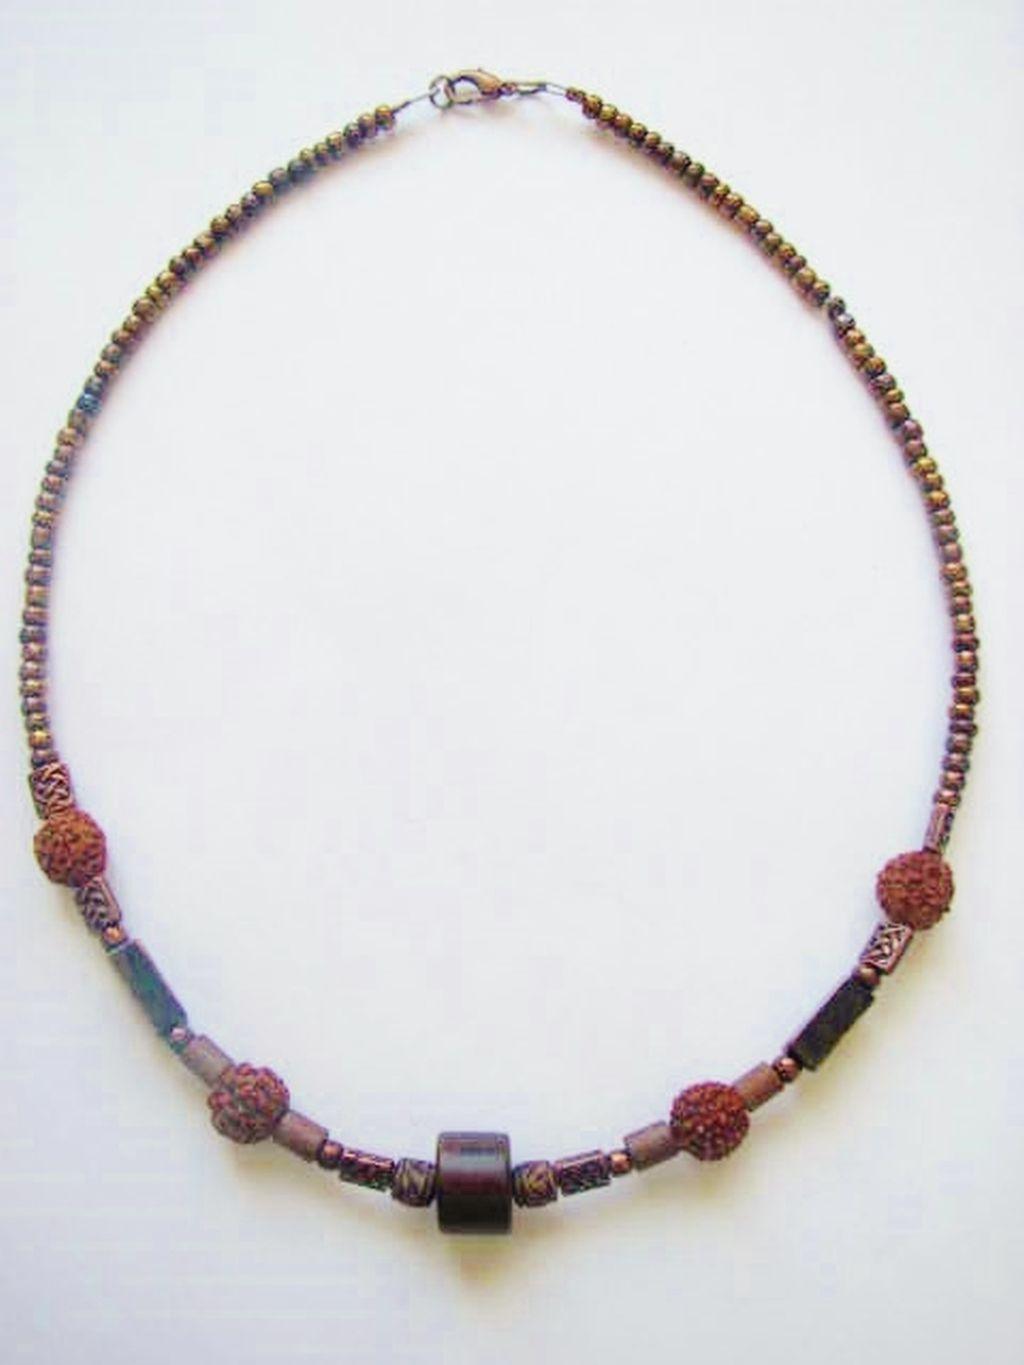 Copper Hematite Men's Surfer Style Beaded Necklace, Beach Choker